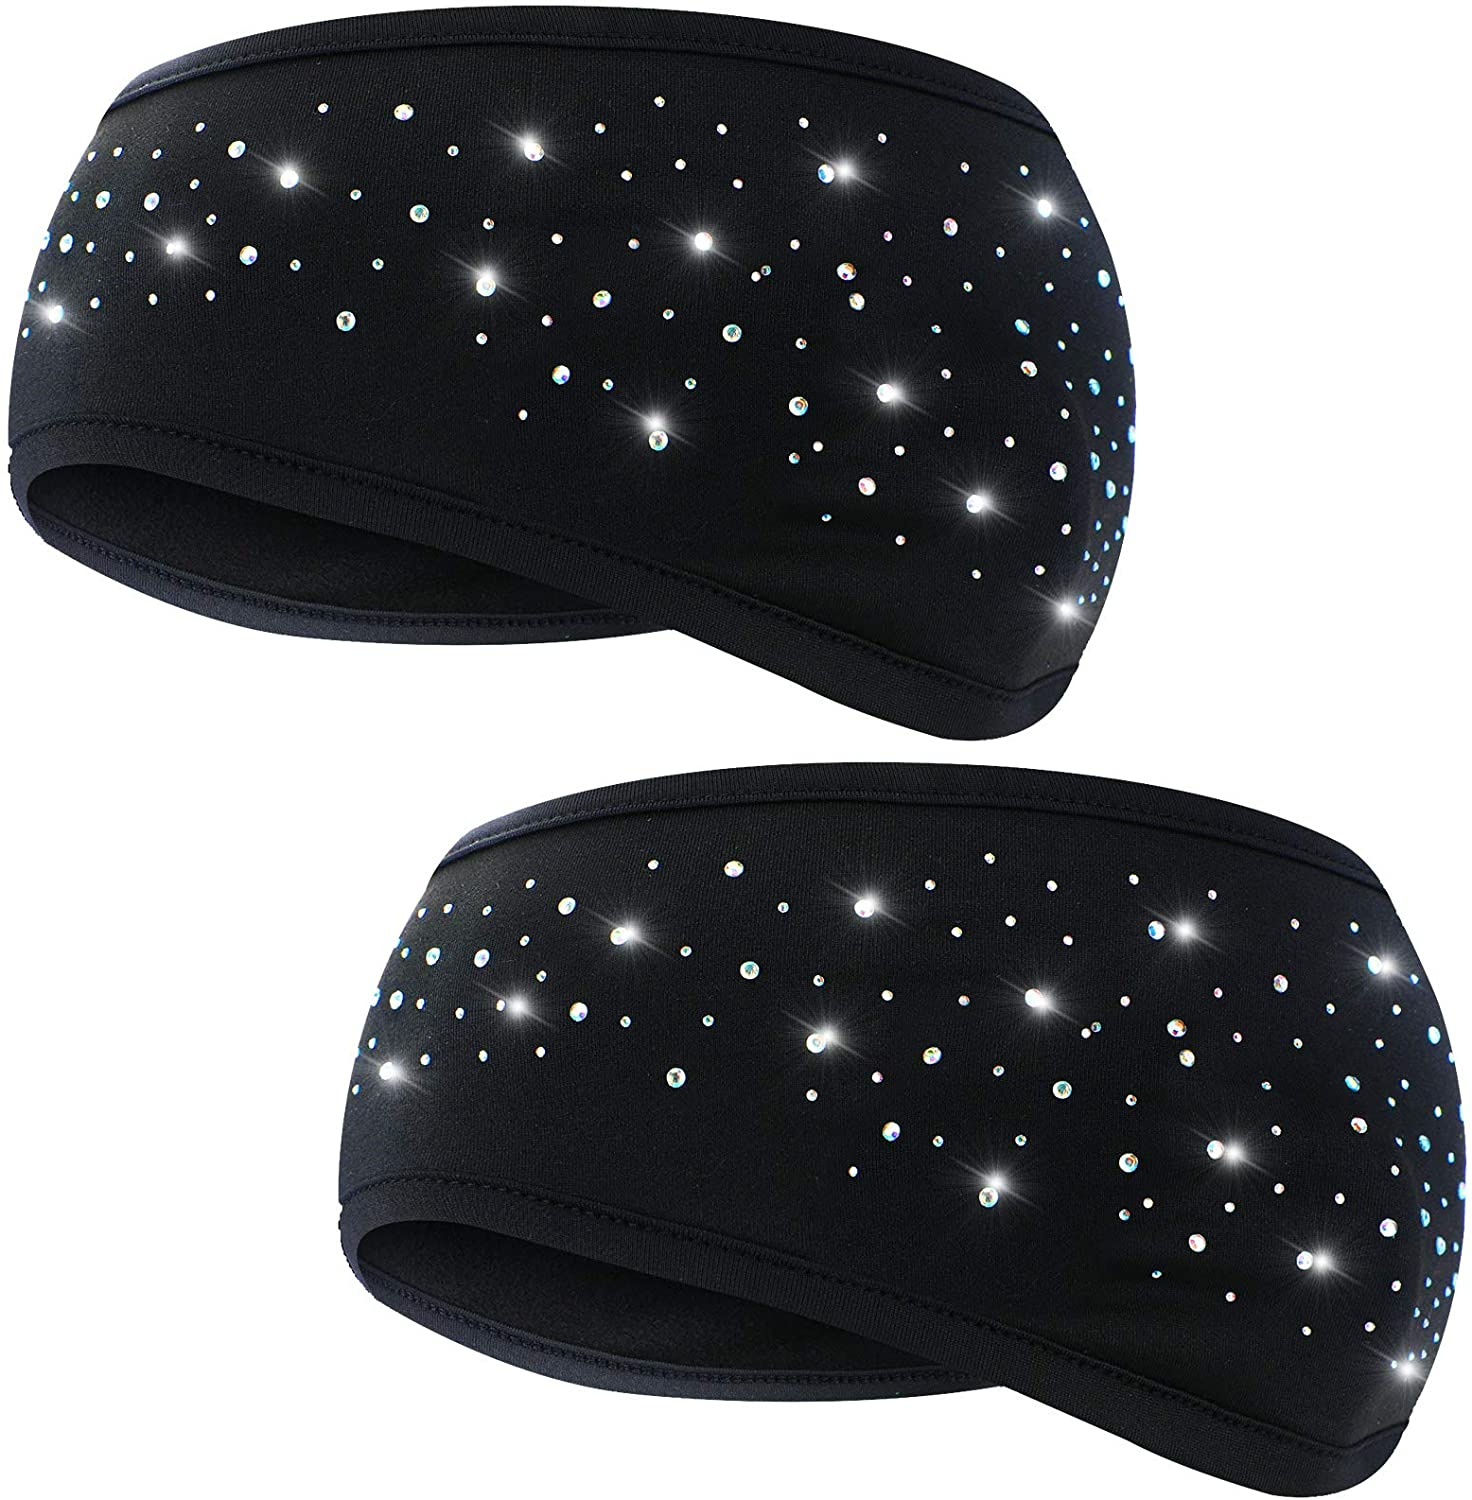 2 Pieces Diamond Women Ear Warmer Stretchy Winter Head Band for Sports